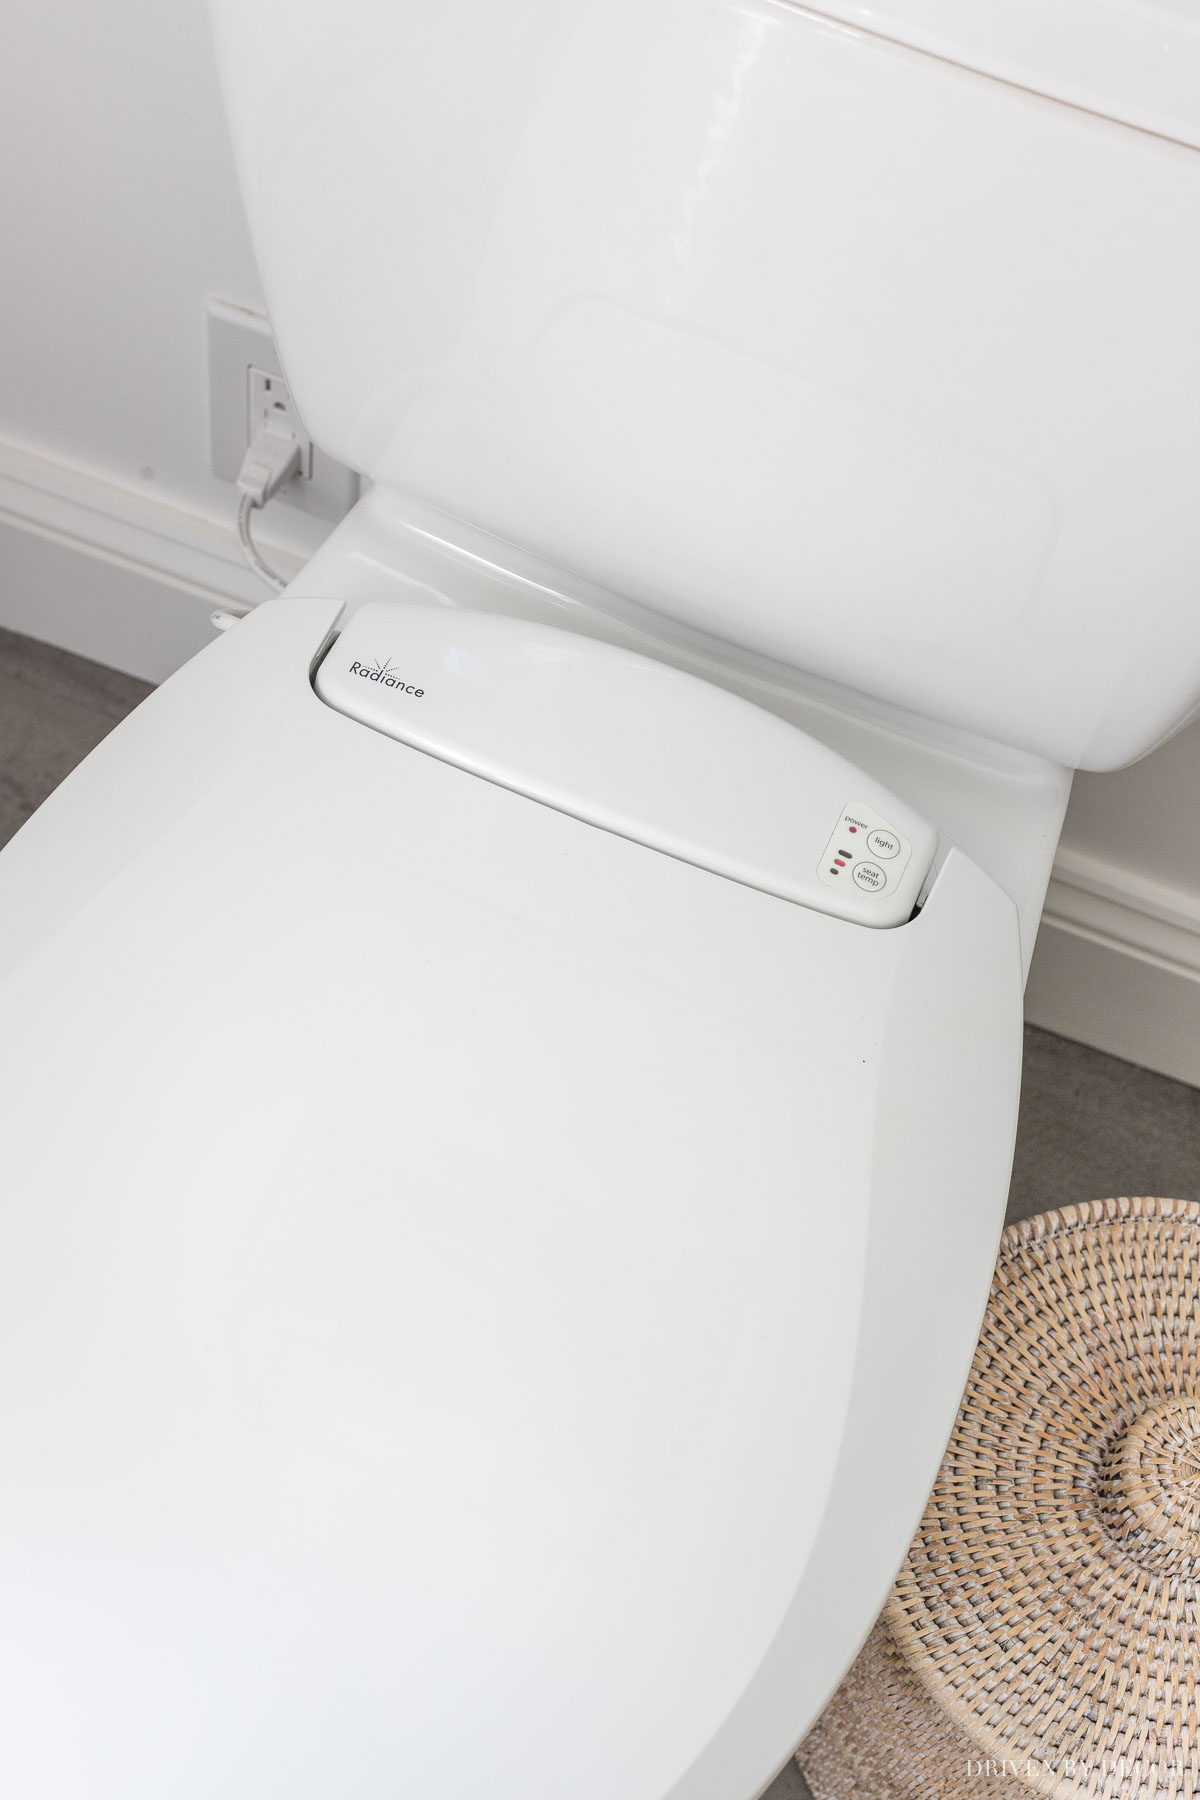 A heated toilet seat! One of the many master bathroom remodel ideas in this post!